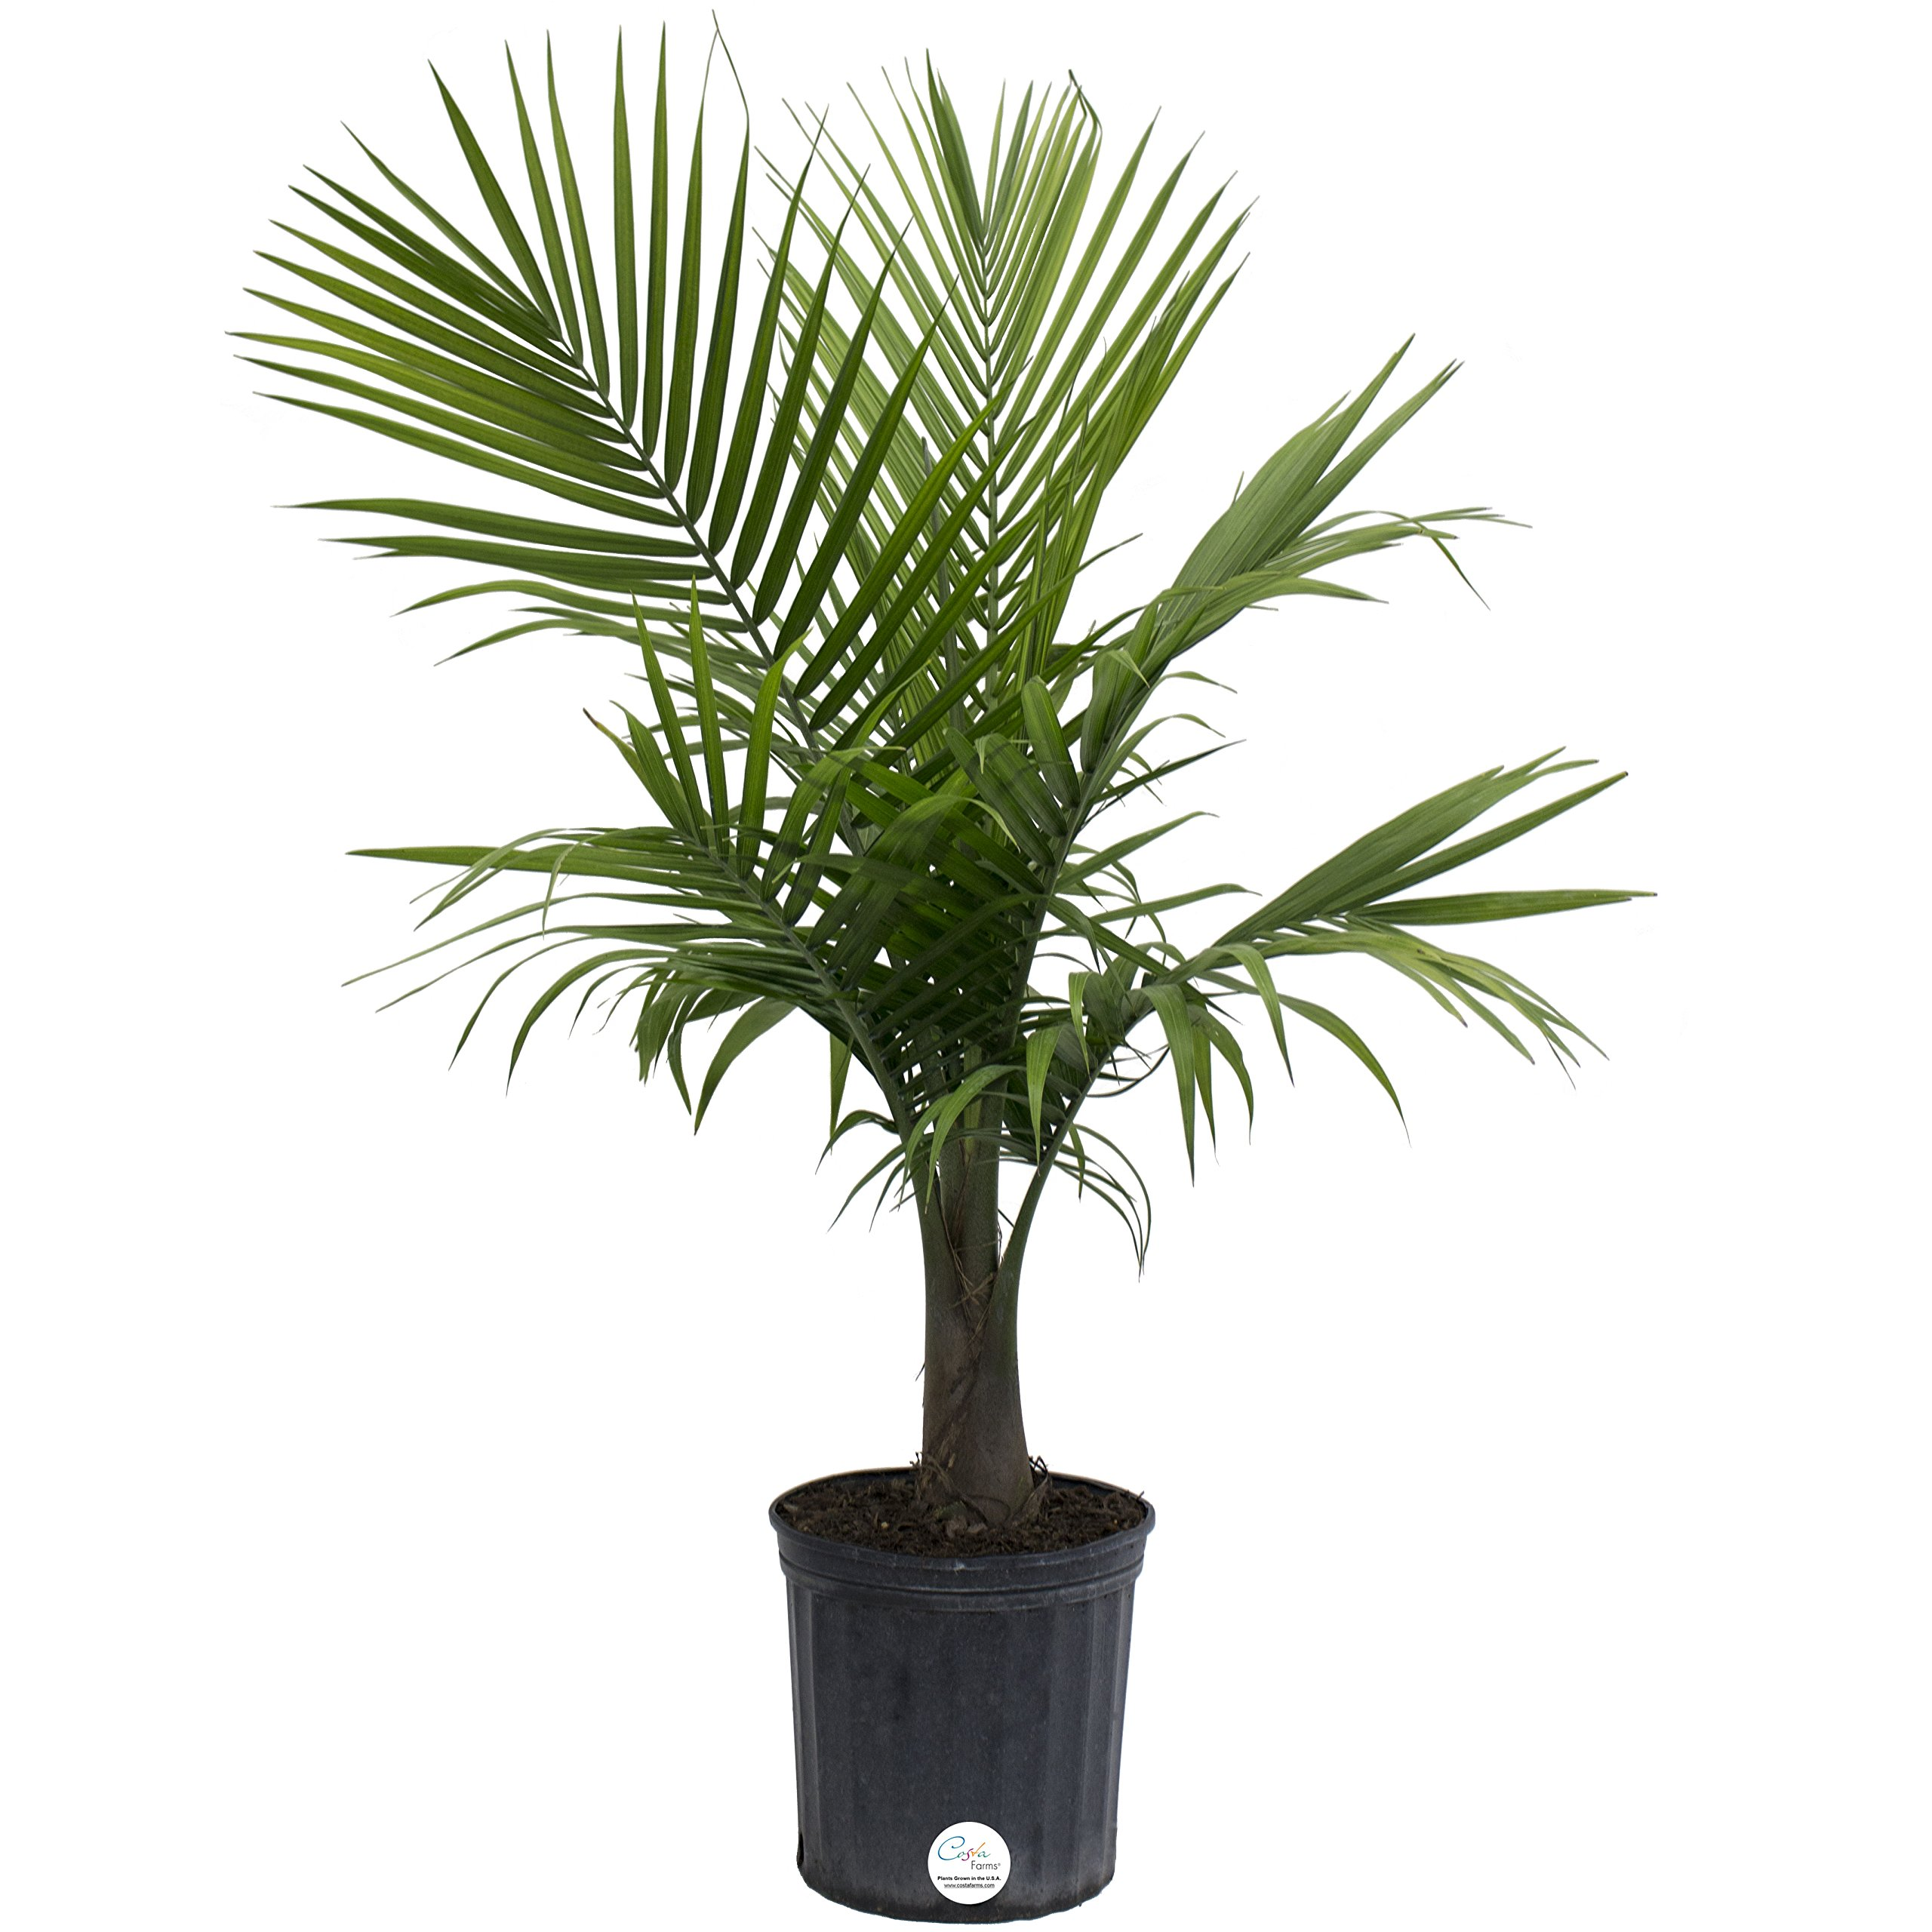 Costa Farms Majesty Palm Live Indoor Floor Plant in 8.75-Inch Grower Pot by Costa Farms